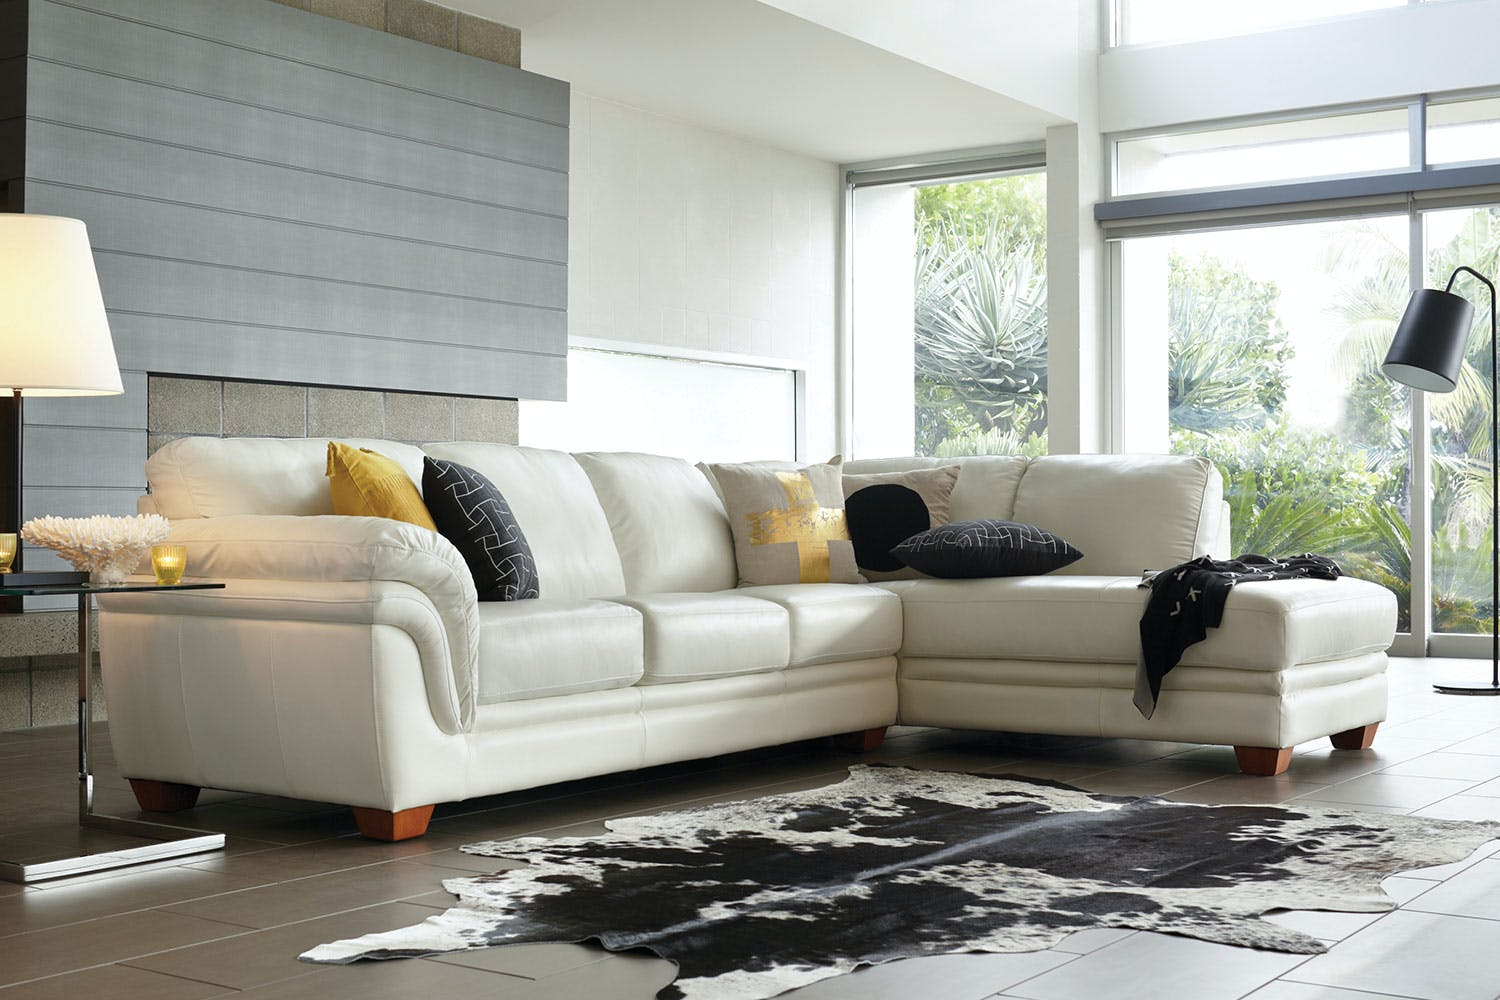 Terrific Demi 3 Seater Leather Lounge With Chaise By La Z Boy Bralicious Painted Fabric Chair Ideas Braliciousco